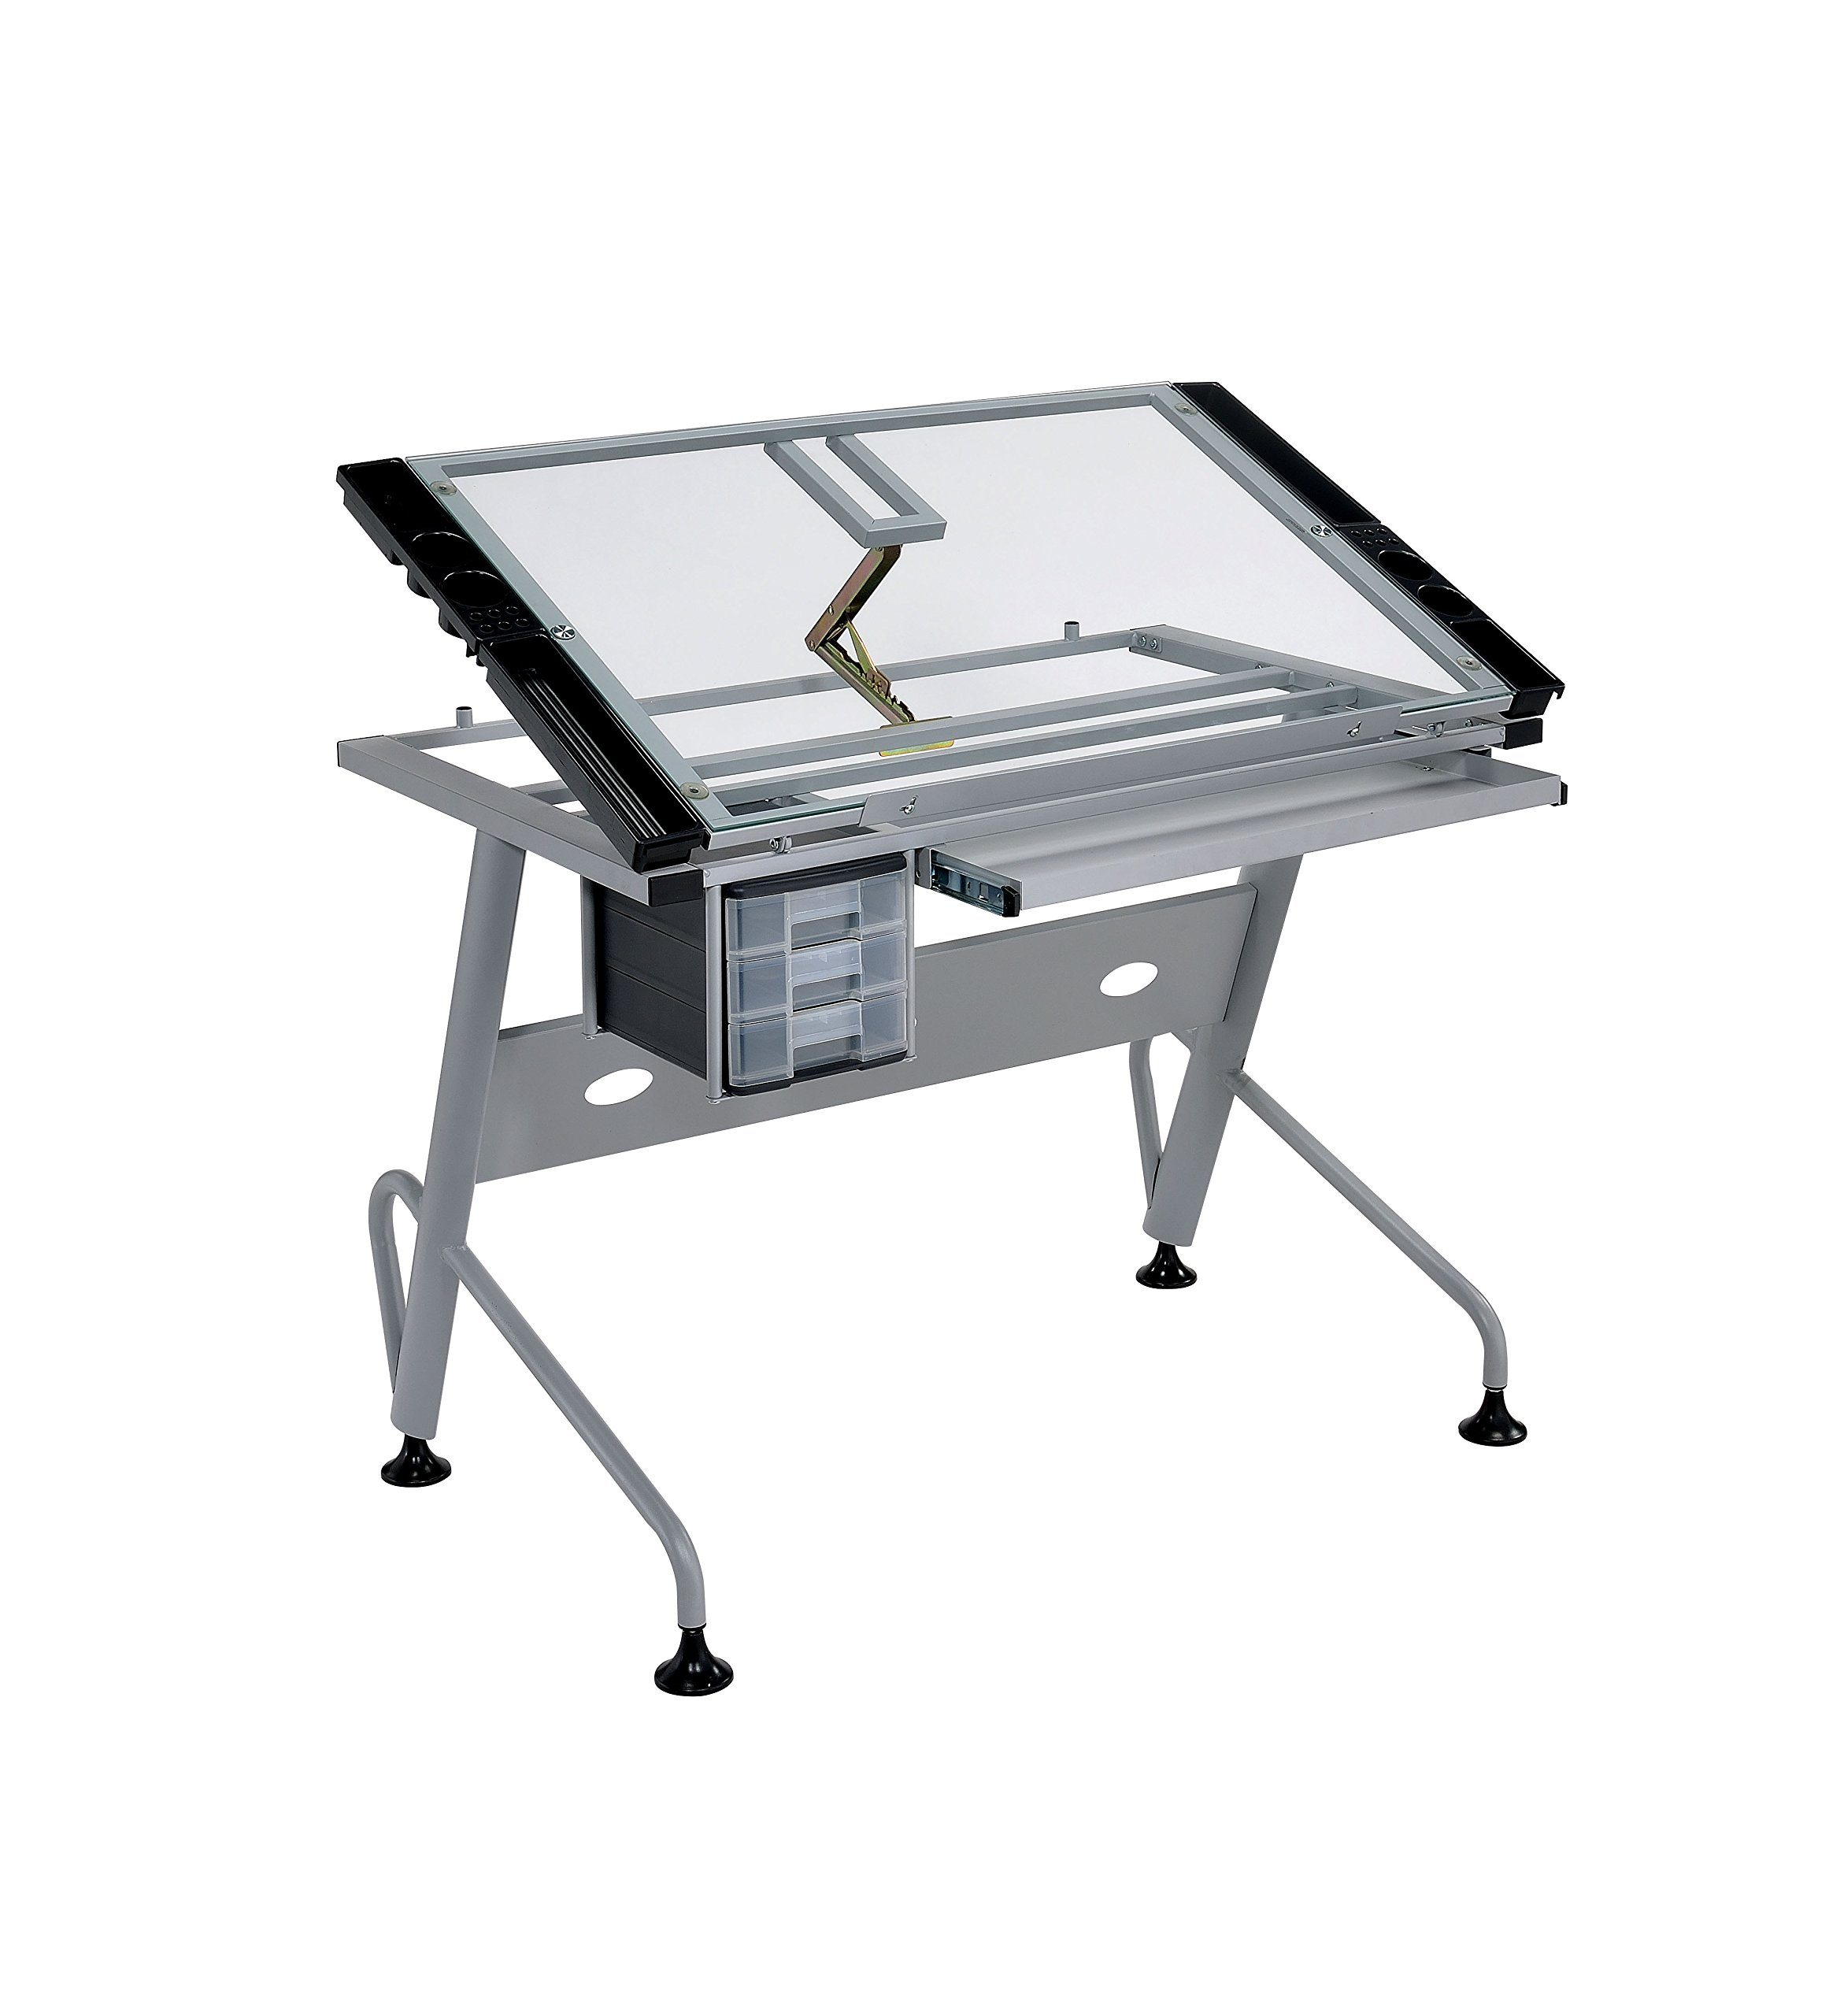 HOMES: Inside + Out ioHOMES Levi Adjustable Clear-Top Drawing Desk, Silver